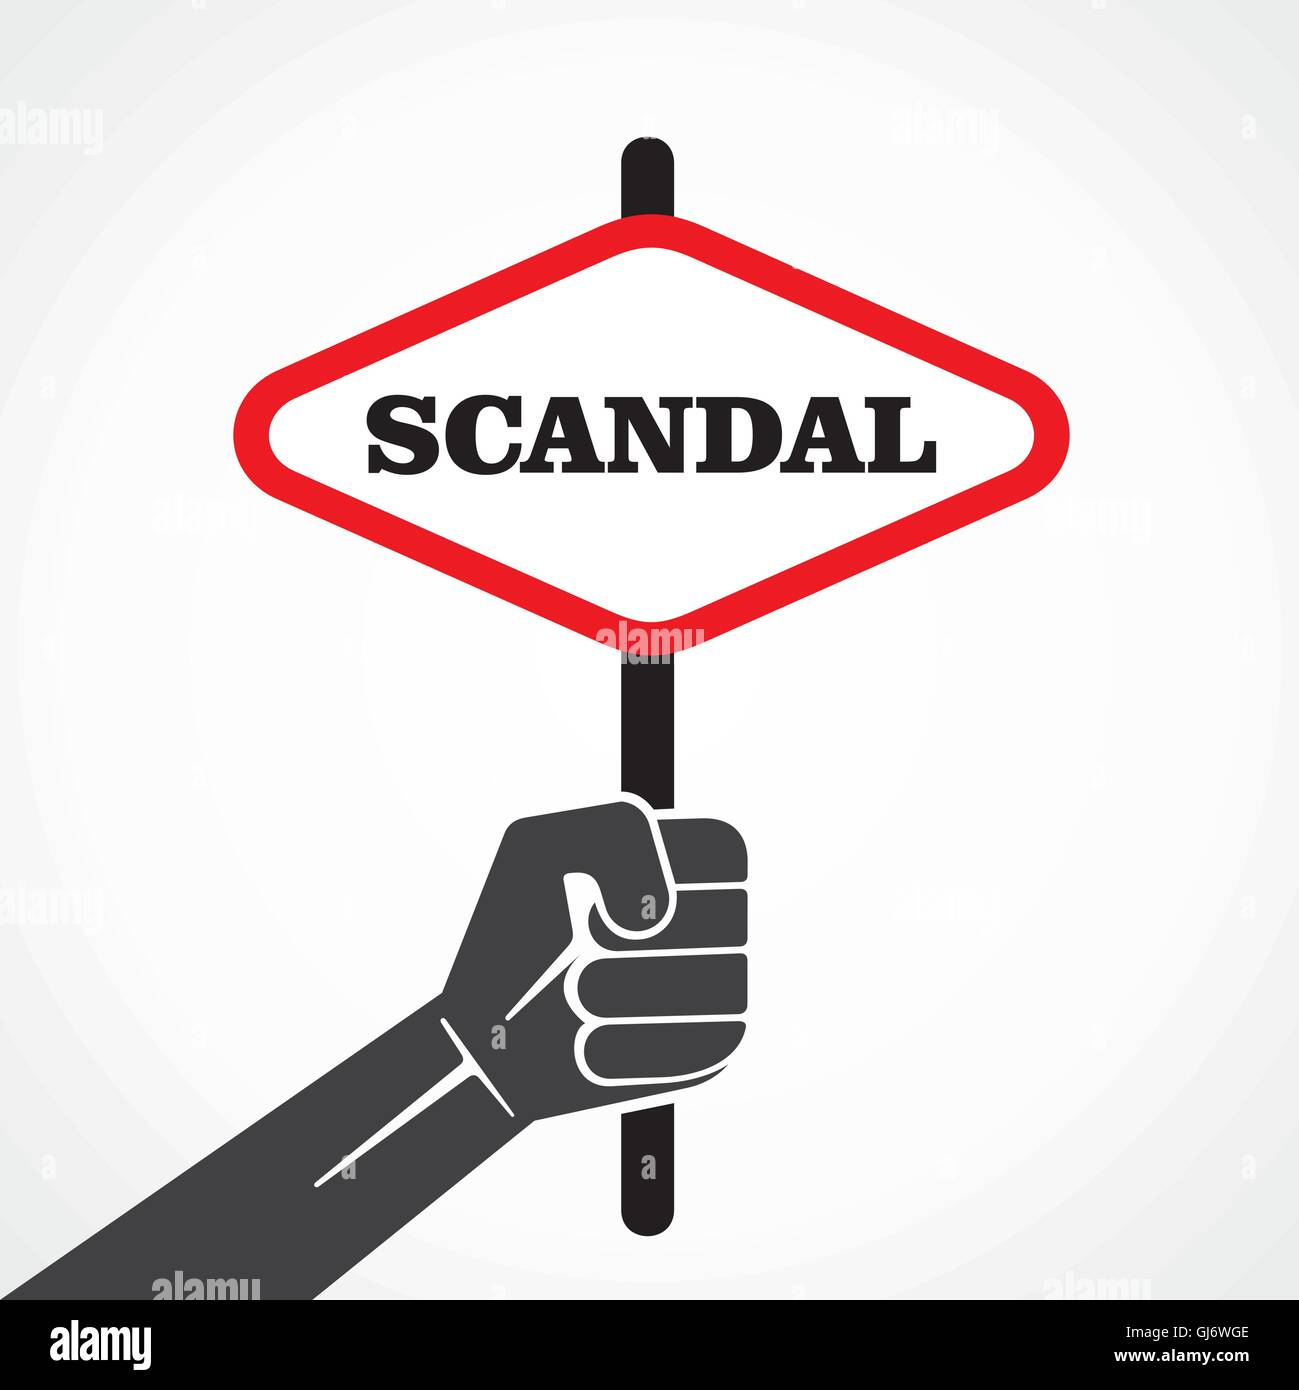 scandal placard hold in hand stock vector - Stock Image